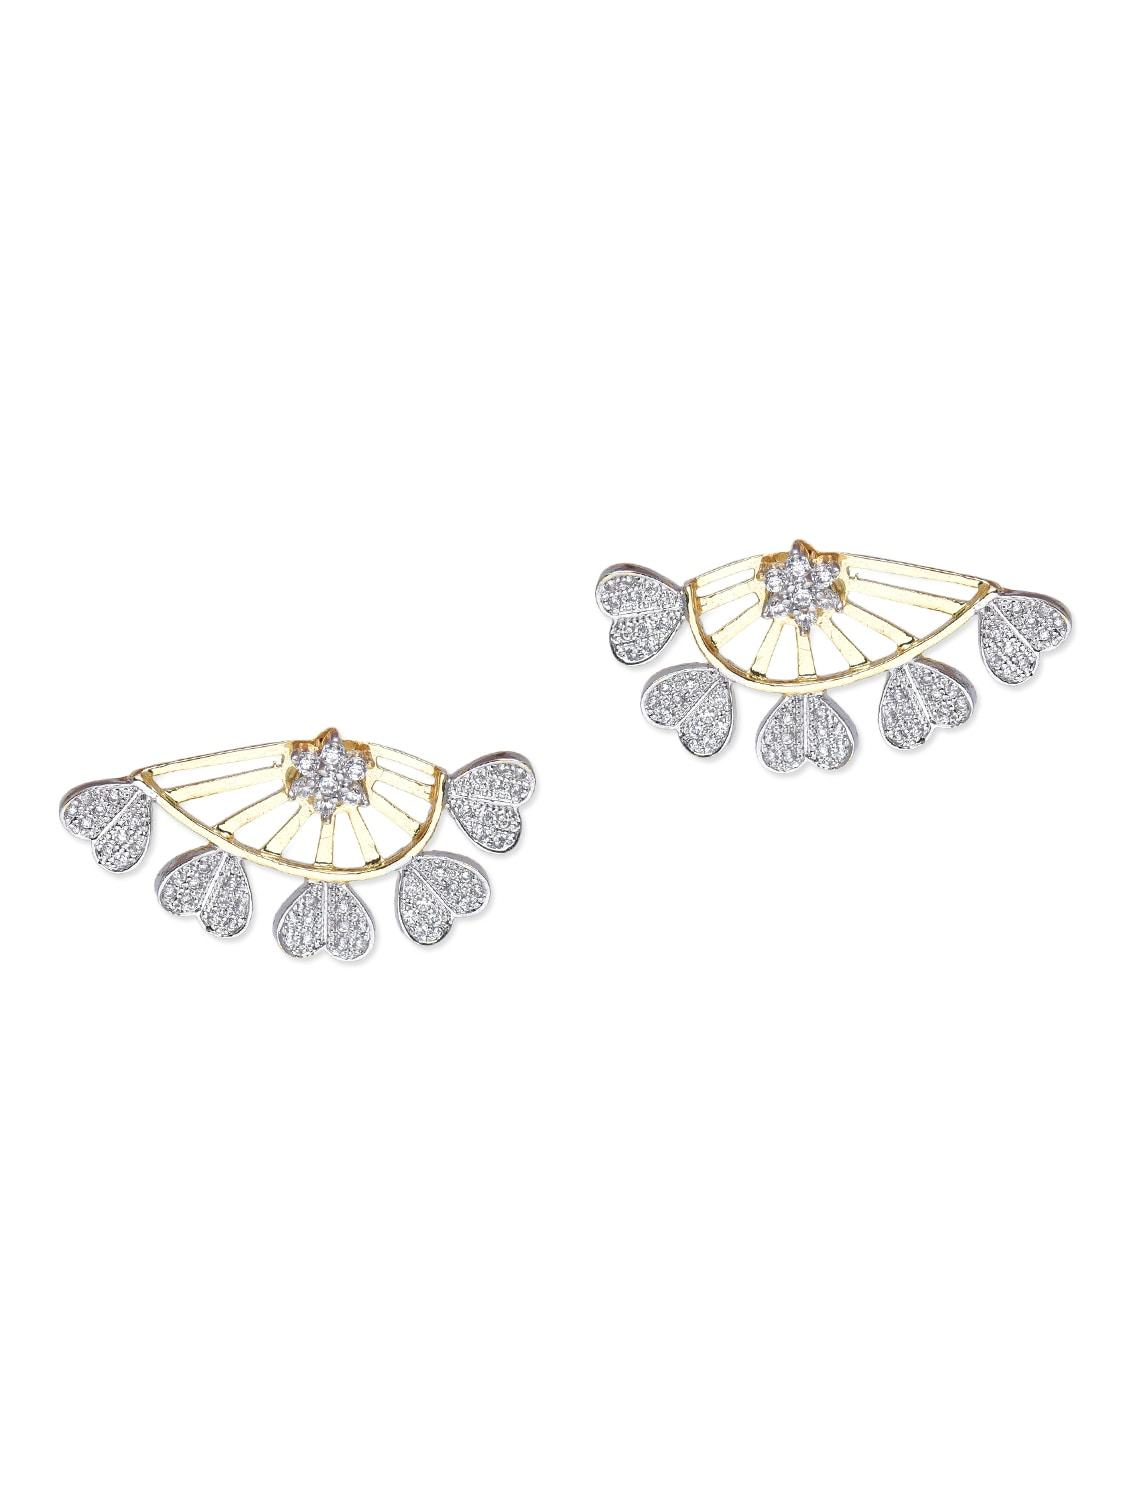 Embellished Floral And Heart Front-back Earrings - Roshni Creations